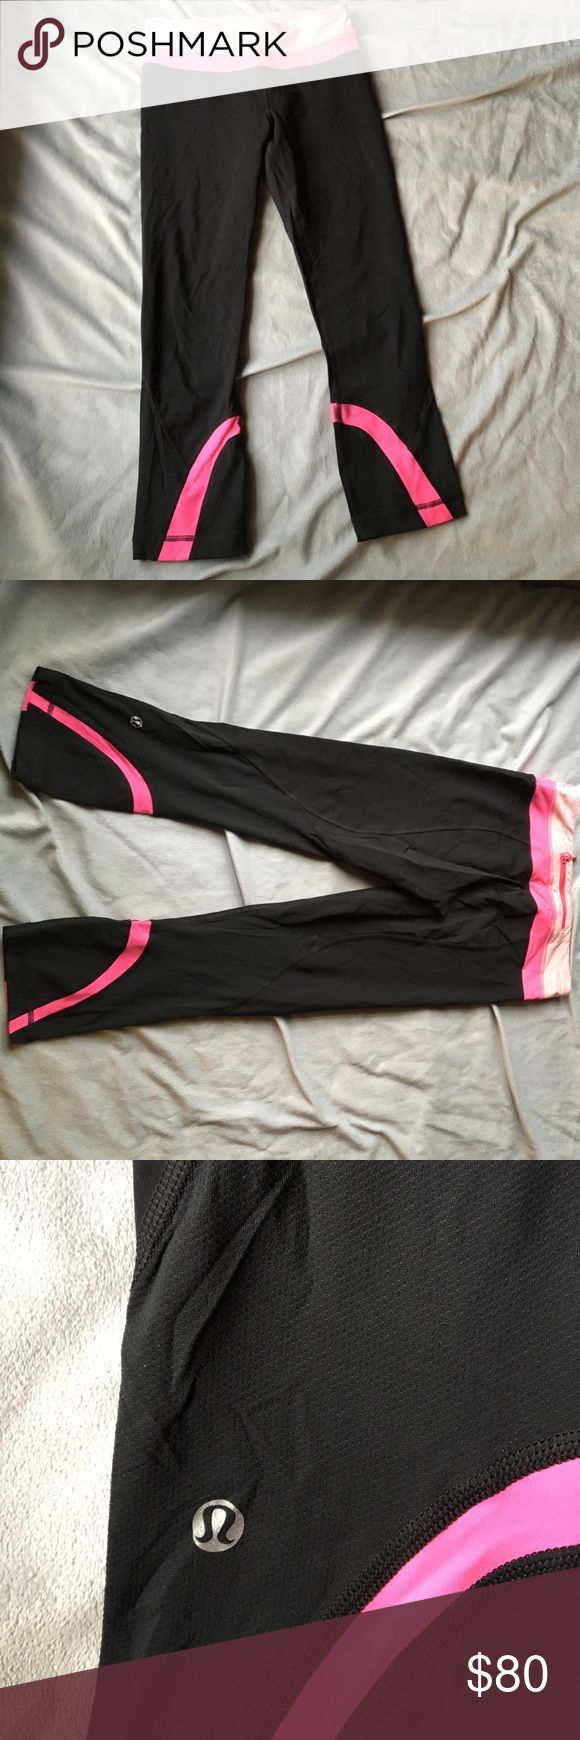 🌟1hr sale🌟 Lululemon inspire crop in black/pink Features two front hideaway pockets as well as a back zipper pocket, very slight after style! Back of the leg is a breathable messy material. I ❤️ offers! lululemon athletica Pants Leggings